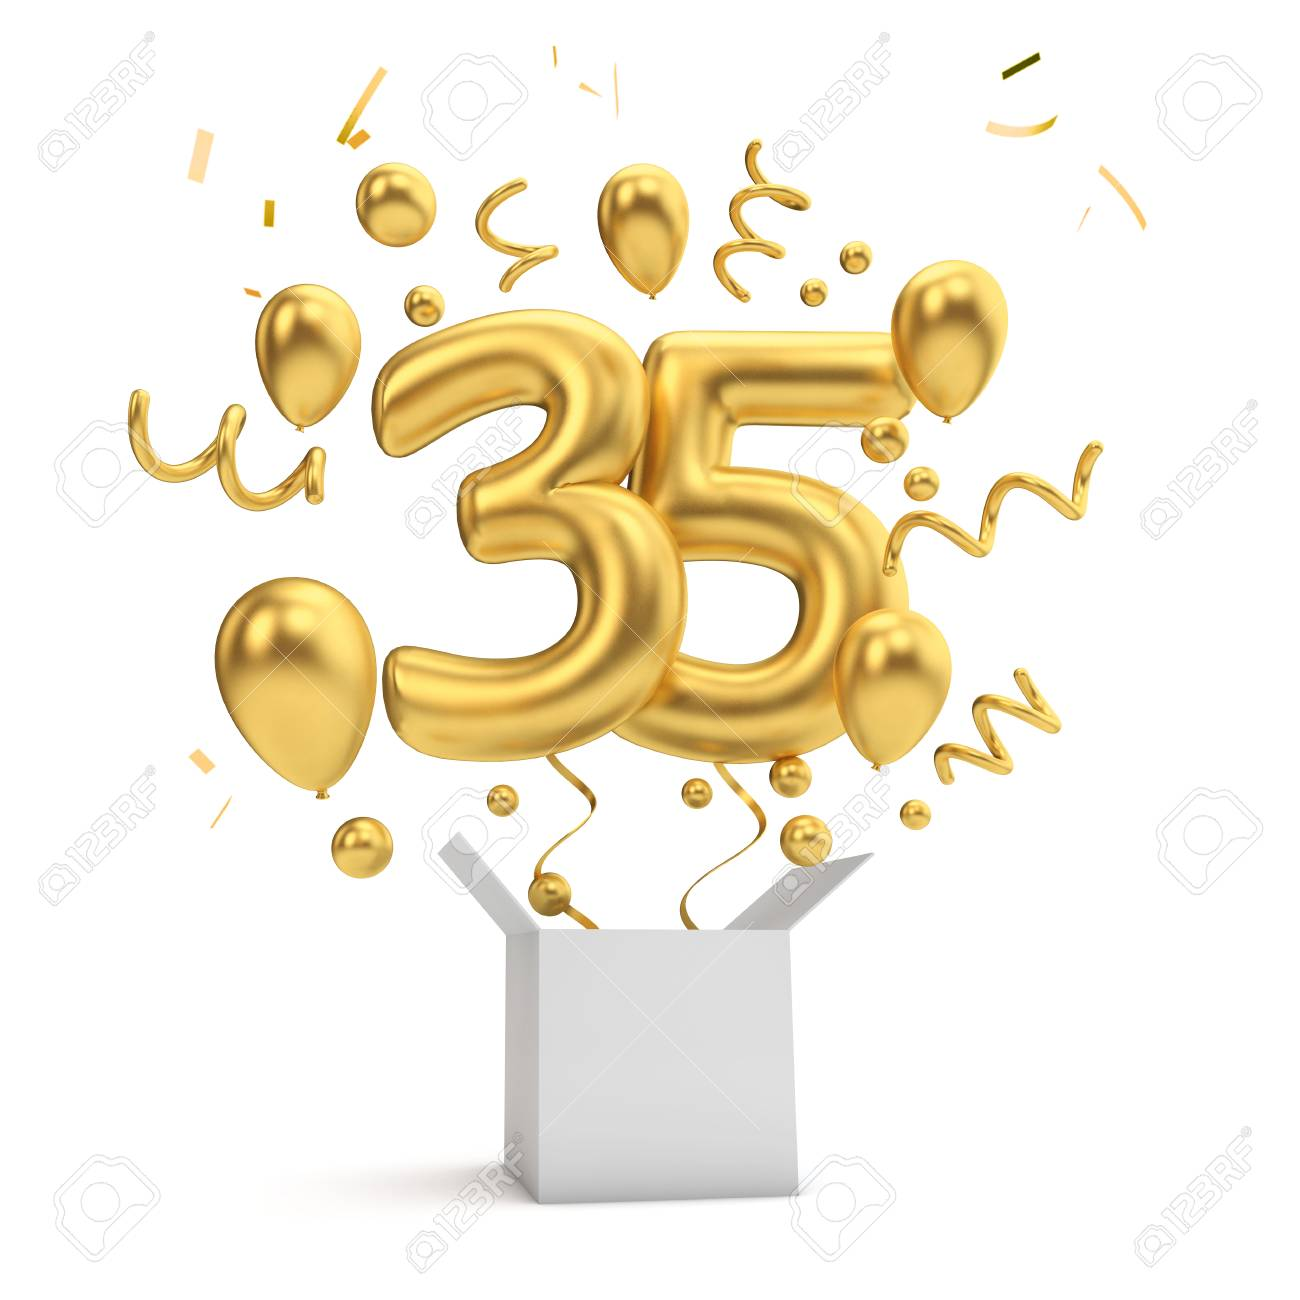 Happy 35th Birthday Gold Surprise Balloon And Box 3D Rendering Stock Photo